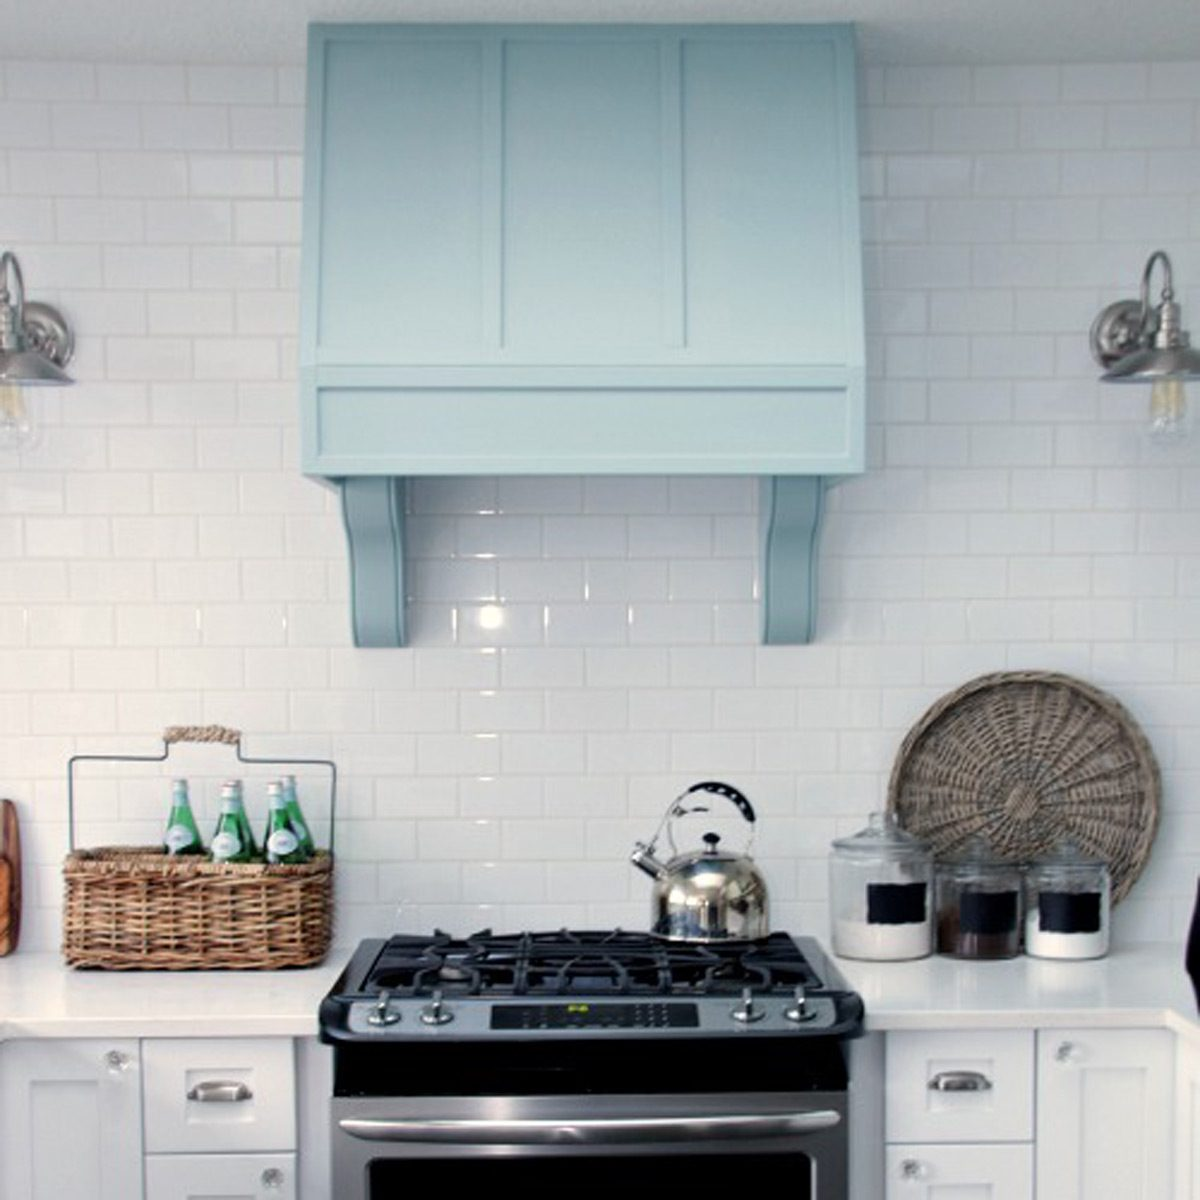 Creative Ways to Disguise a Range Hood Vent — The Family Handyman